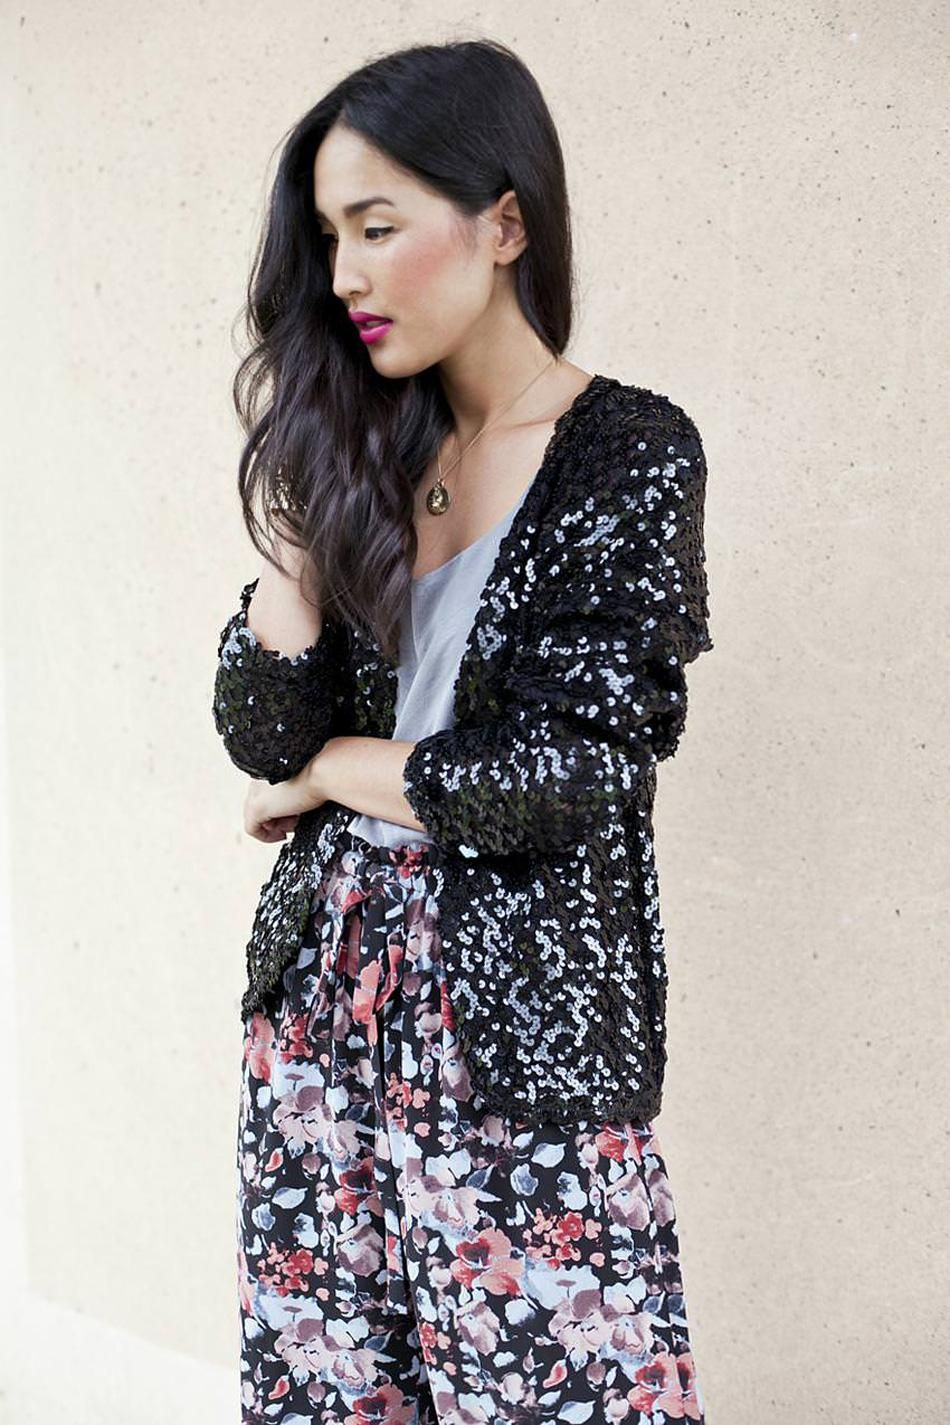 Street Style - How to Wear Colored Sequins During the Day | StyleCaster